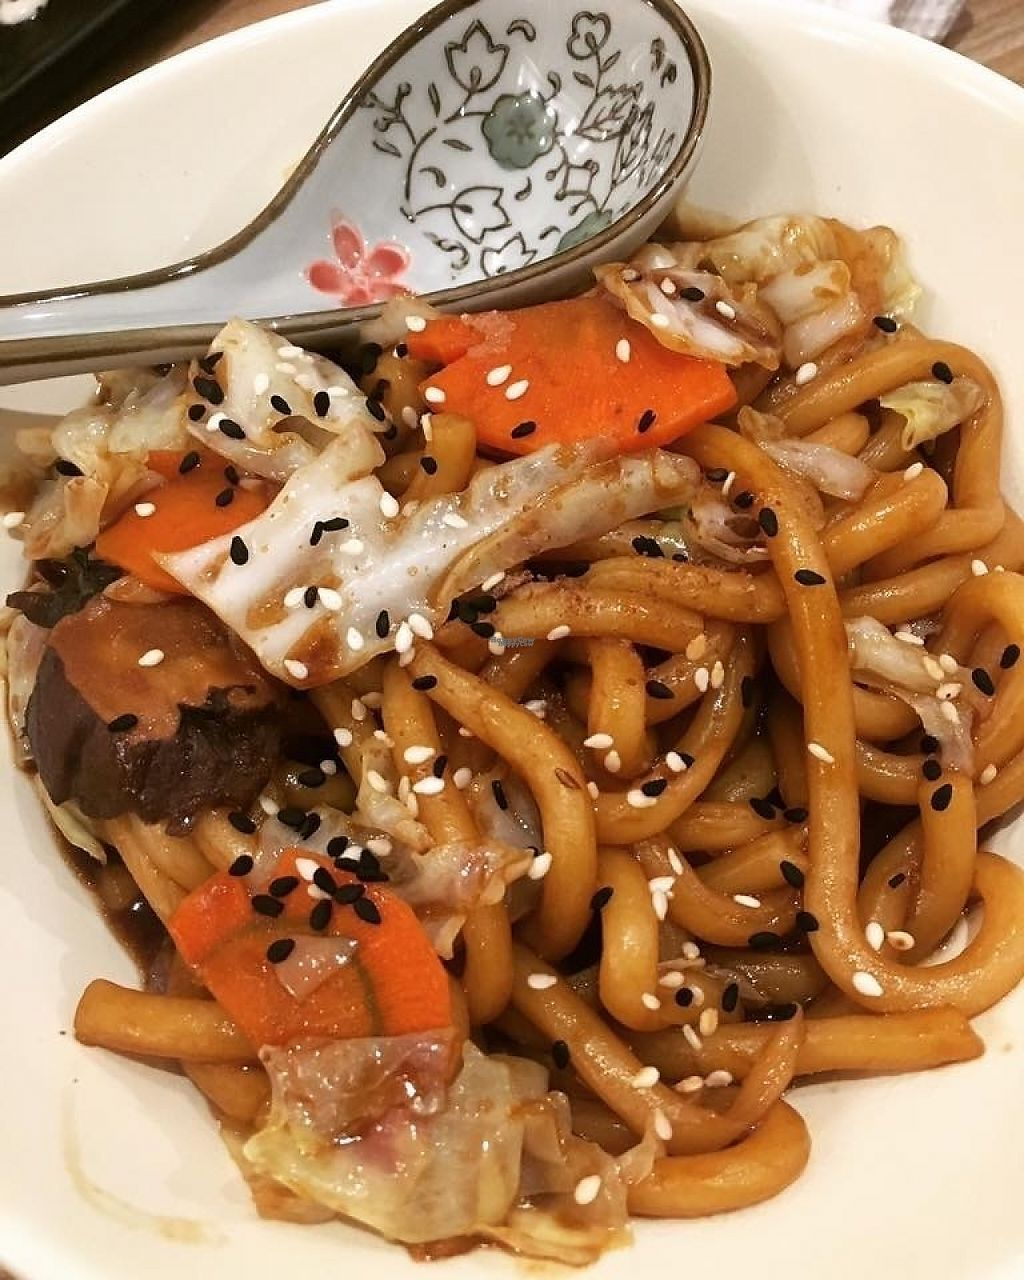 """Photo of Sushi Kitchen - Plaza Gurney  by <a href=""""/members/profile/janett"""">janett</a> <br/>Fried Udon RM7.80 <br/> April 28, 2017  - <a href='/contact/abuse/image/85510/253330'>Report</a>"""